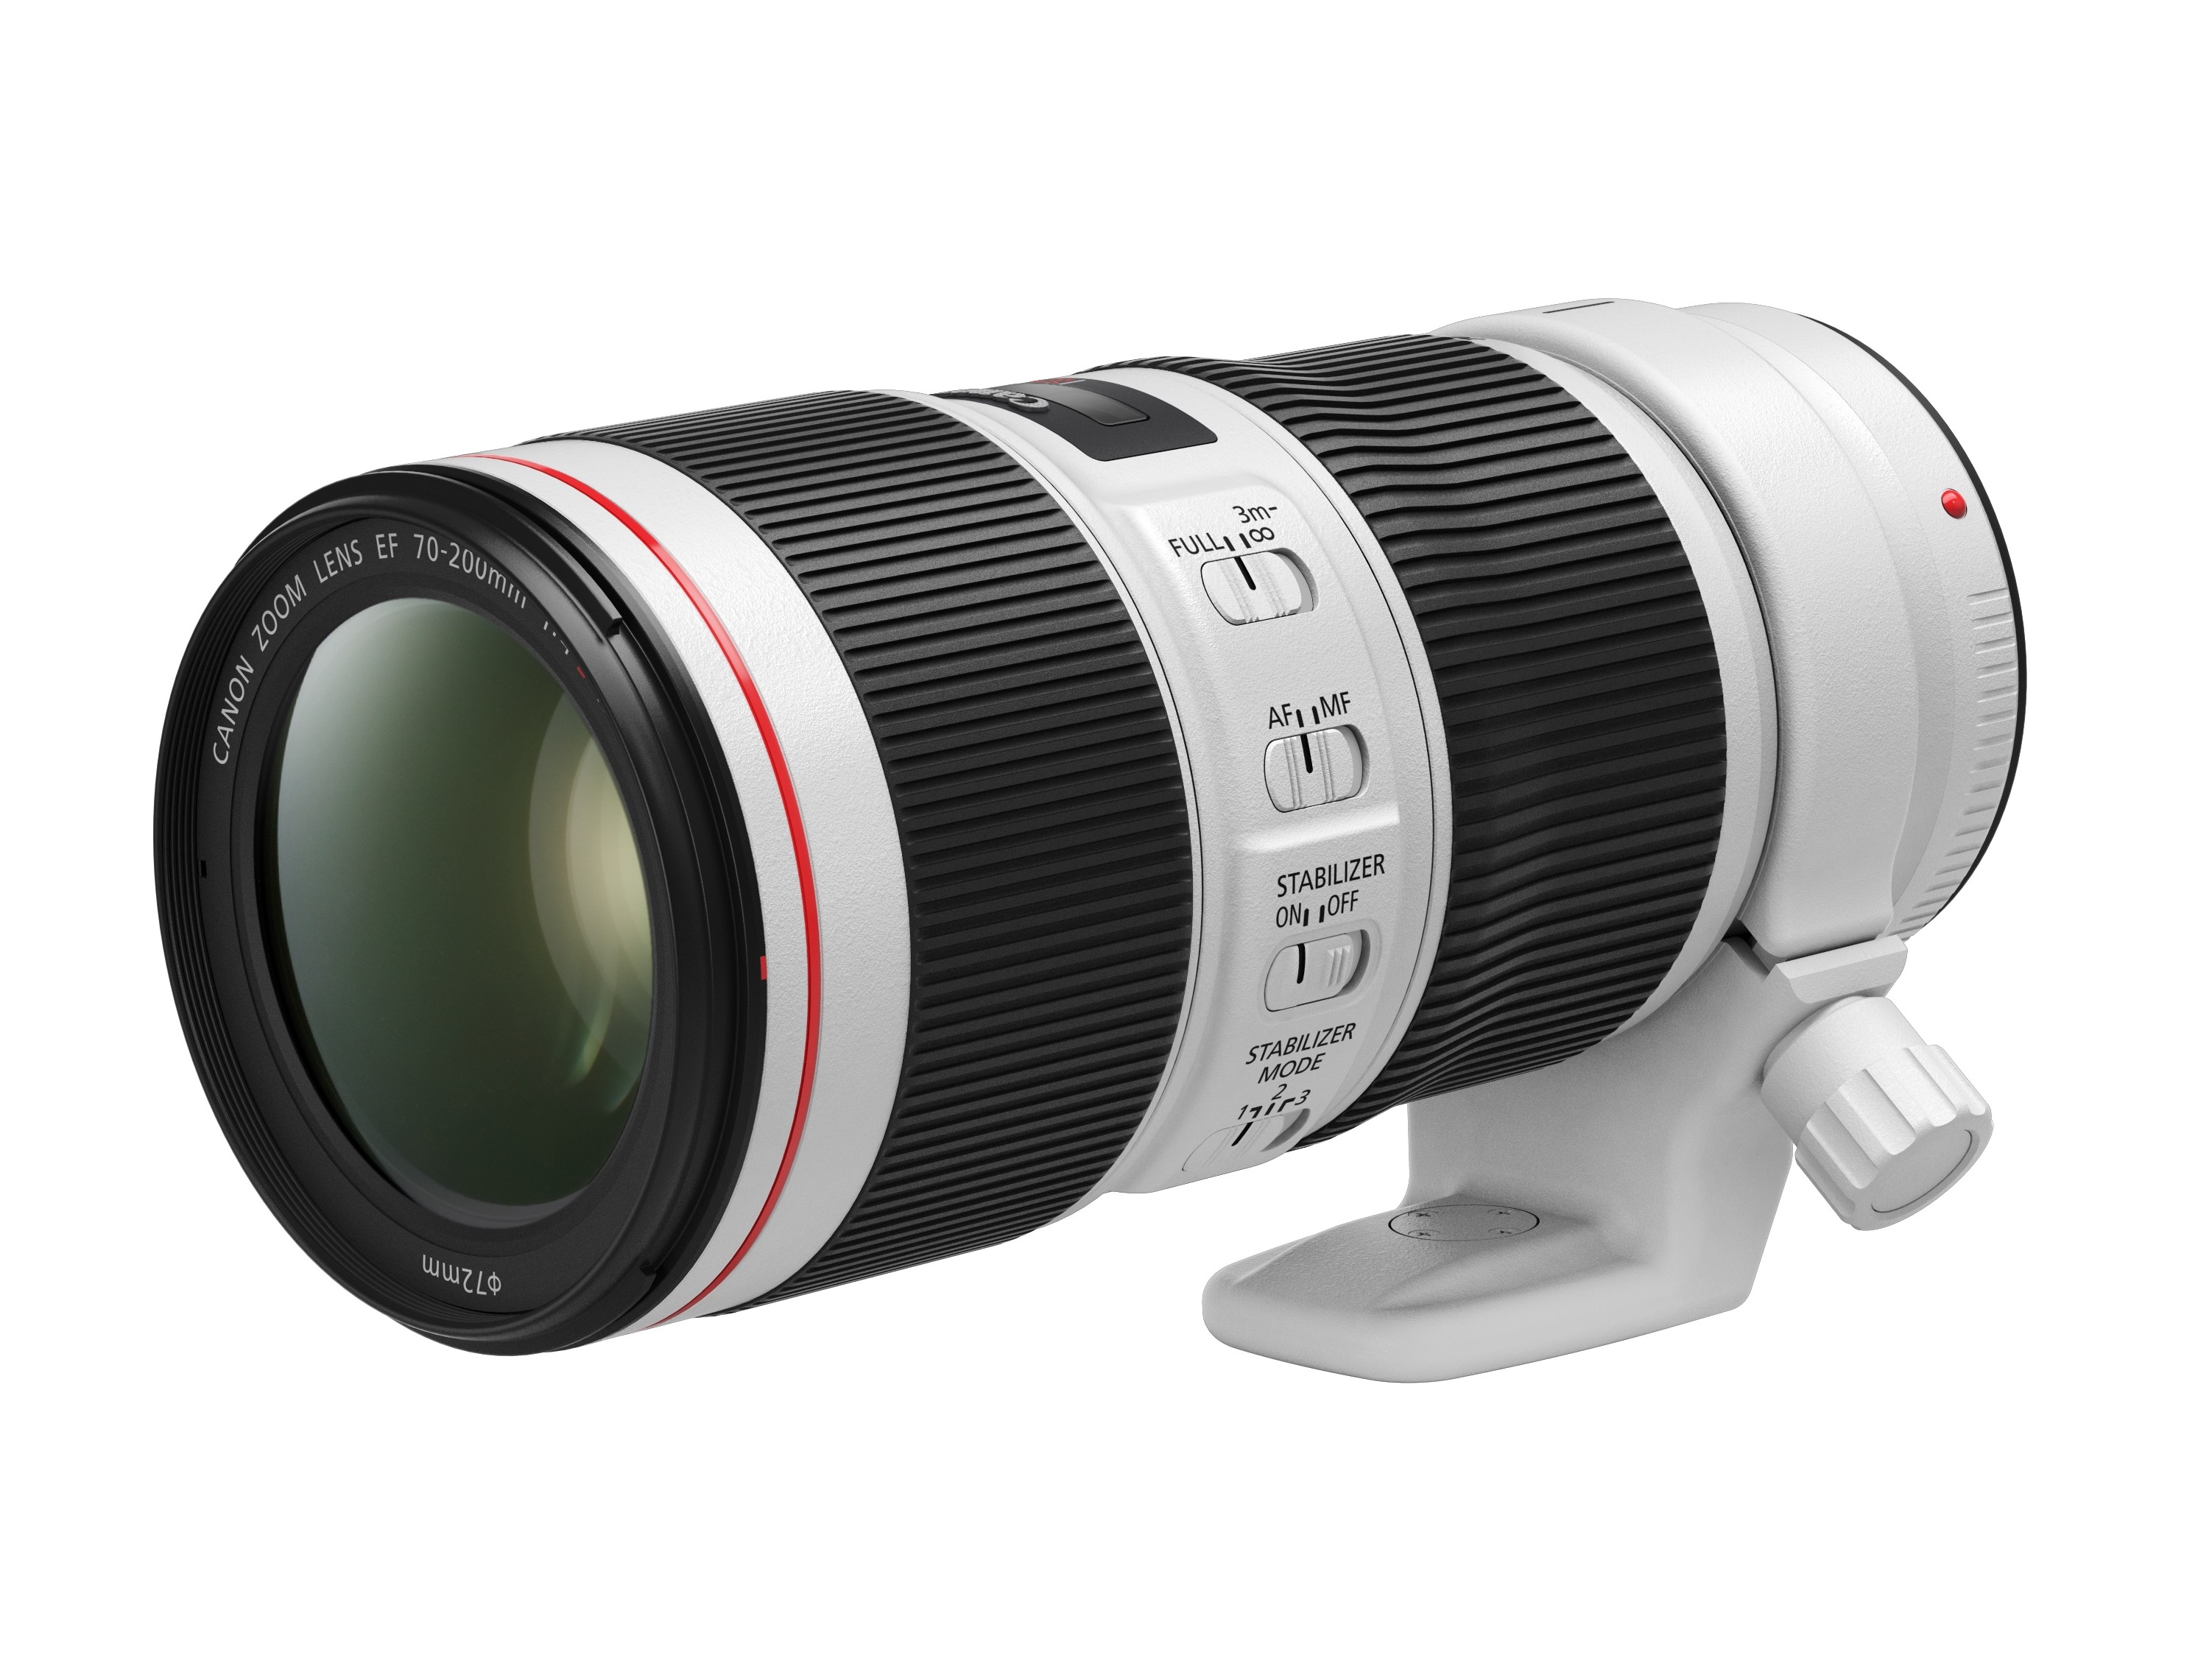 Canon: Full-Frame EF 70-200mm f/4L IS II USM with even stronger 5-step image stabilizer